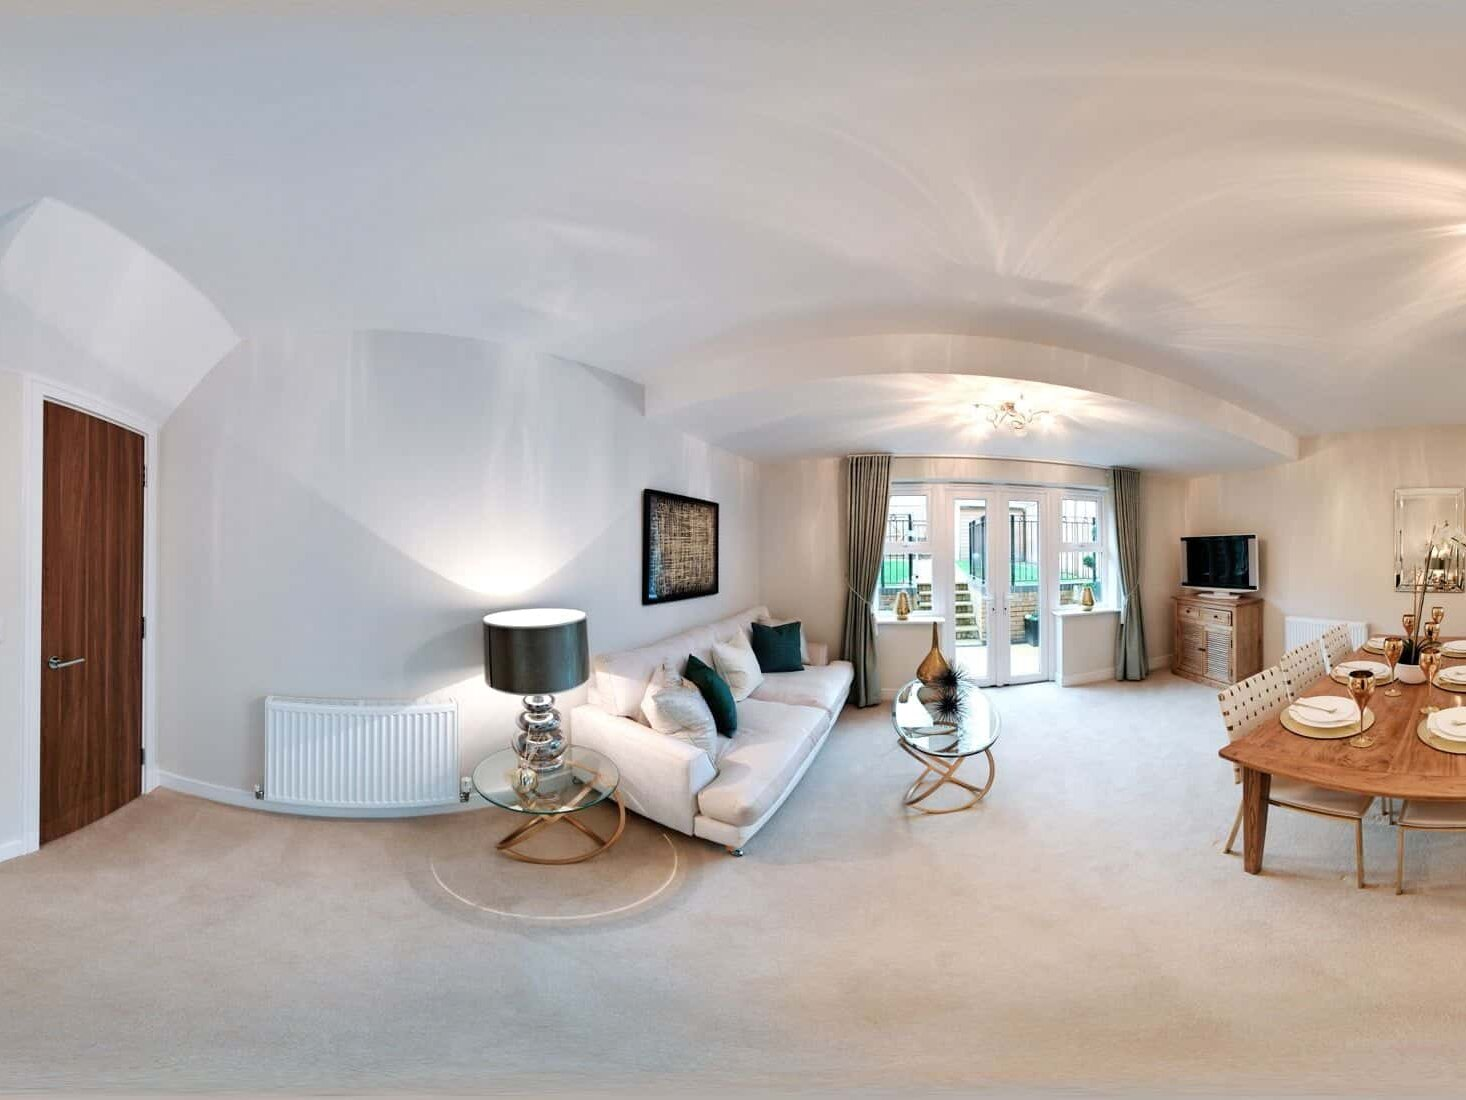 Linden Homes - 360 Photography